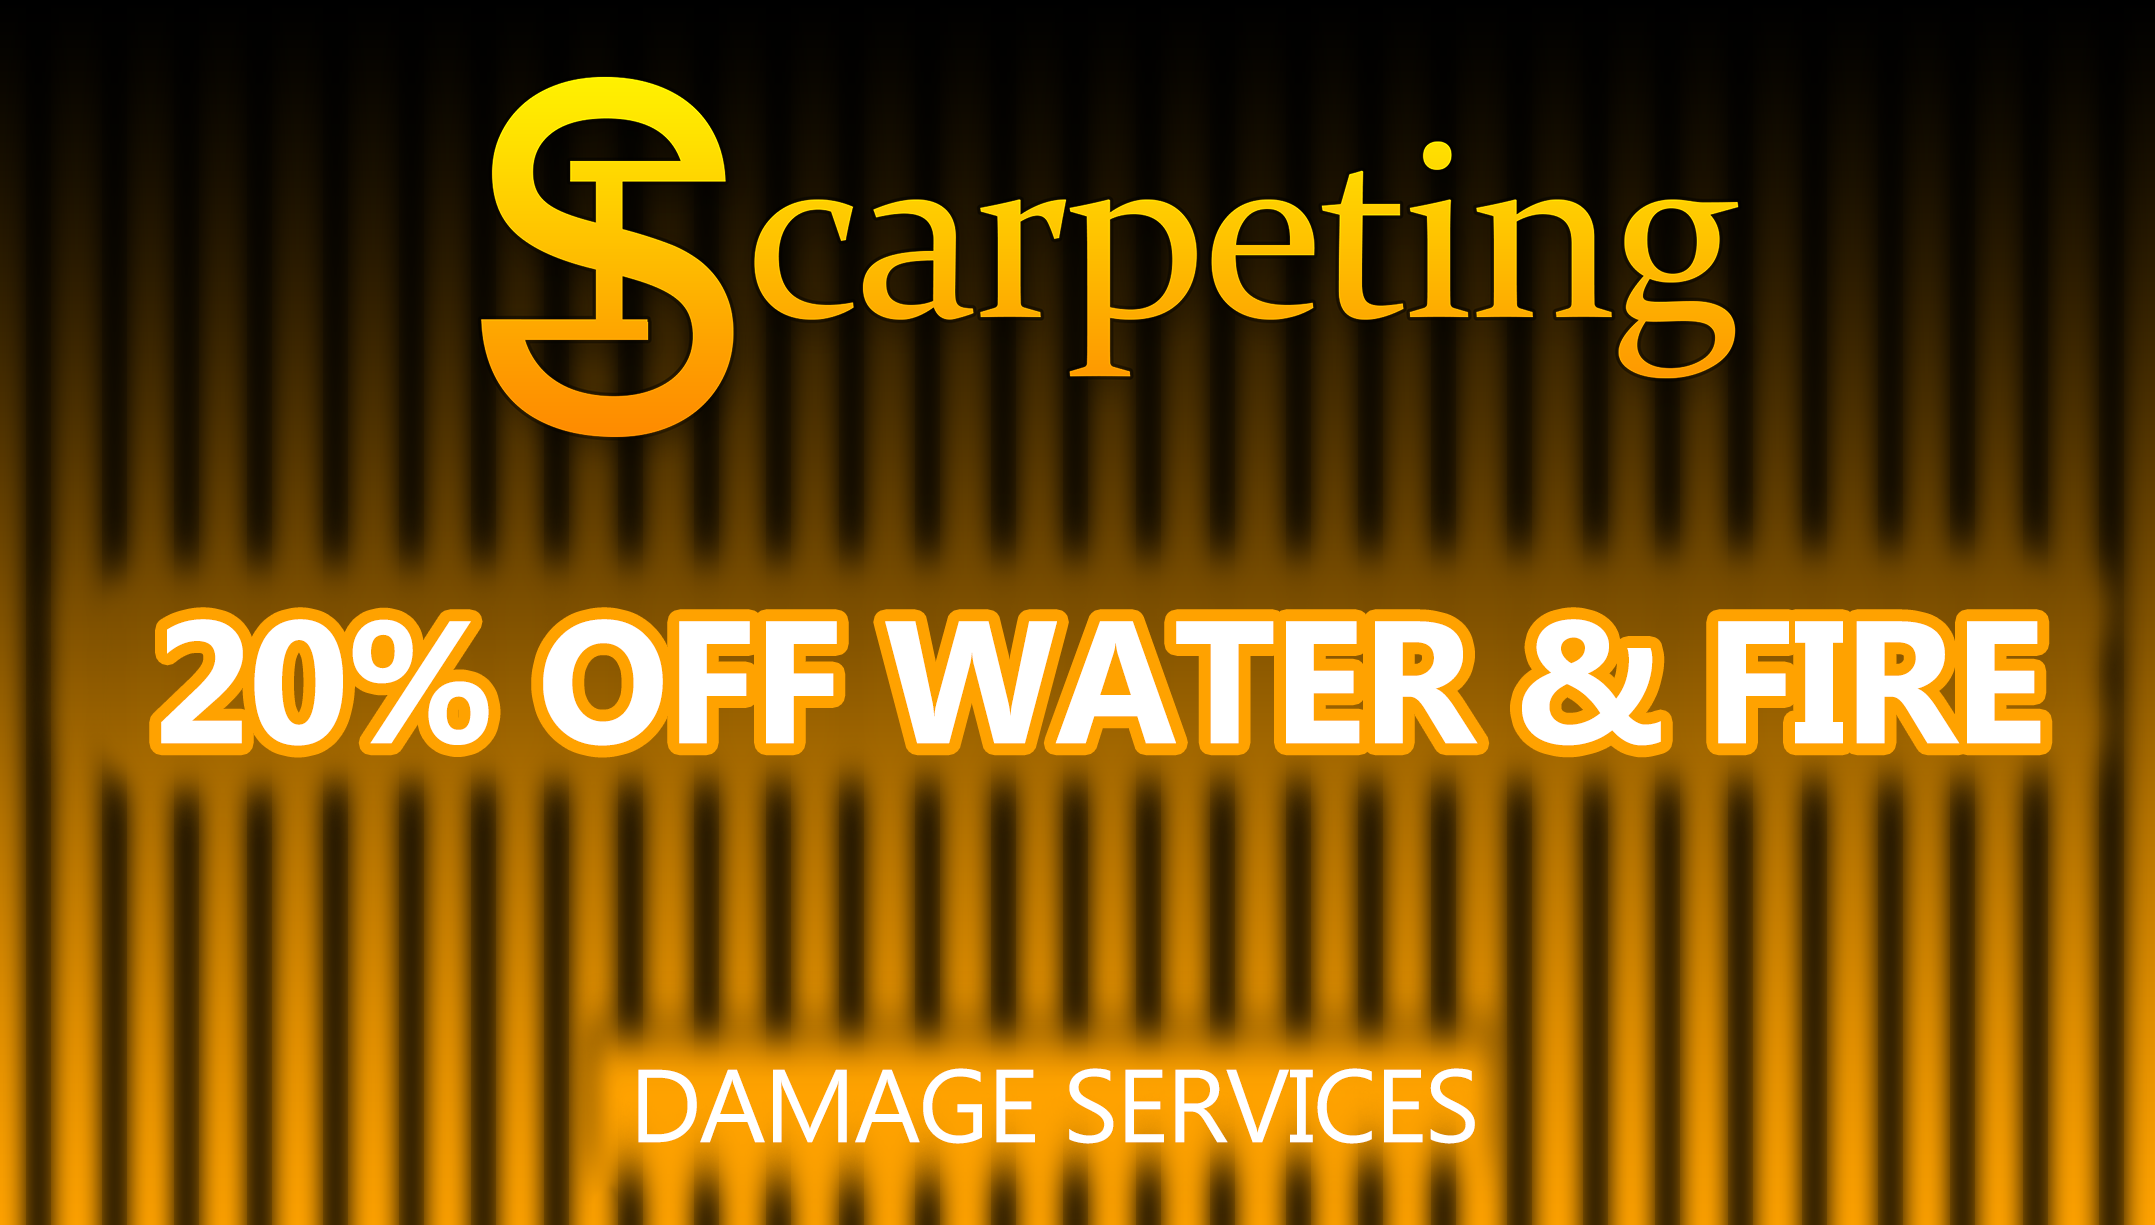 Water or Fire Damage Services 20 PERCENT OFF